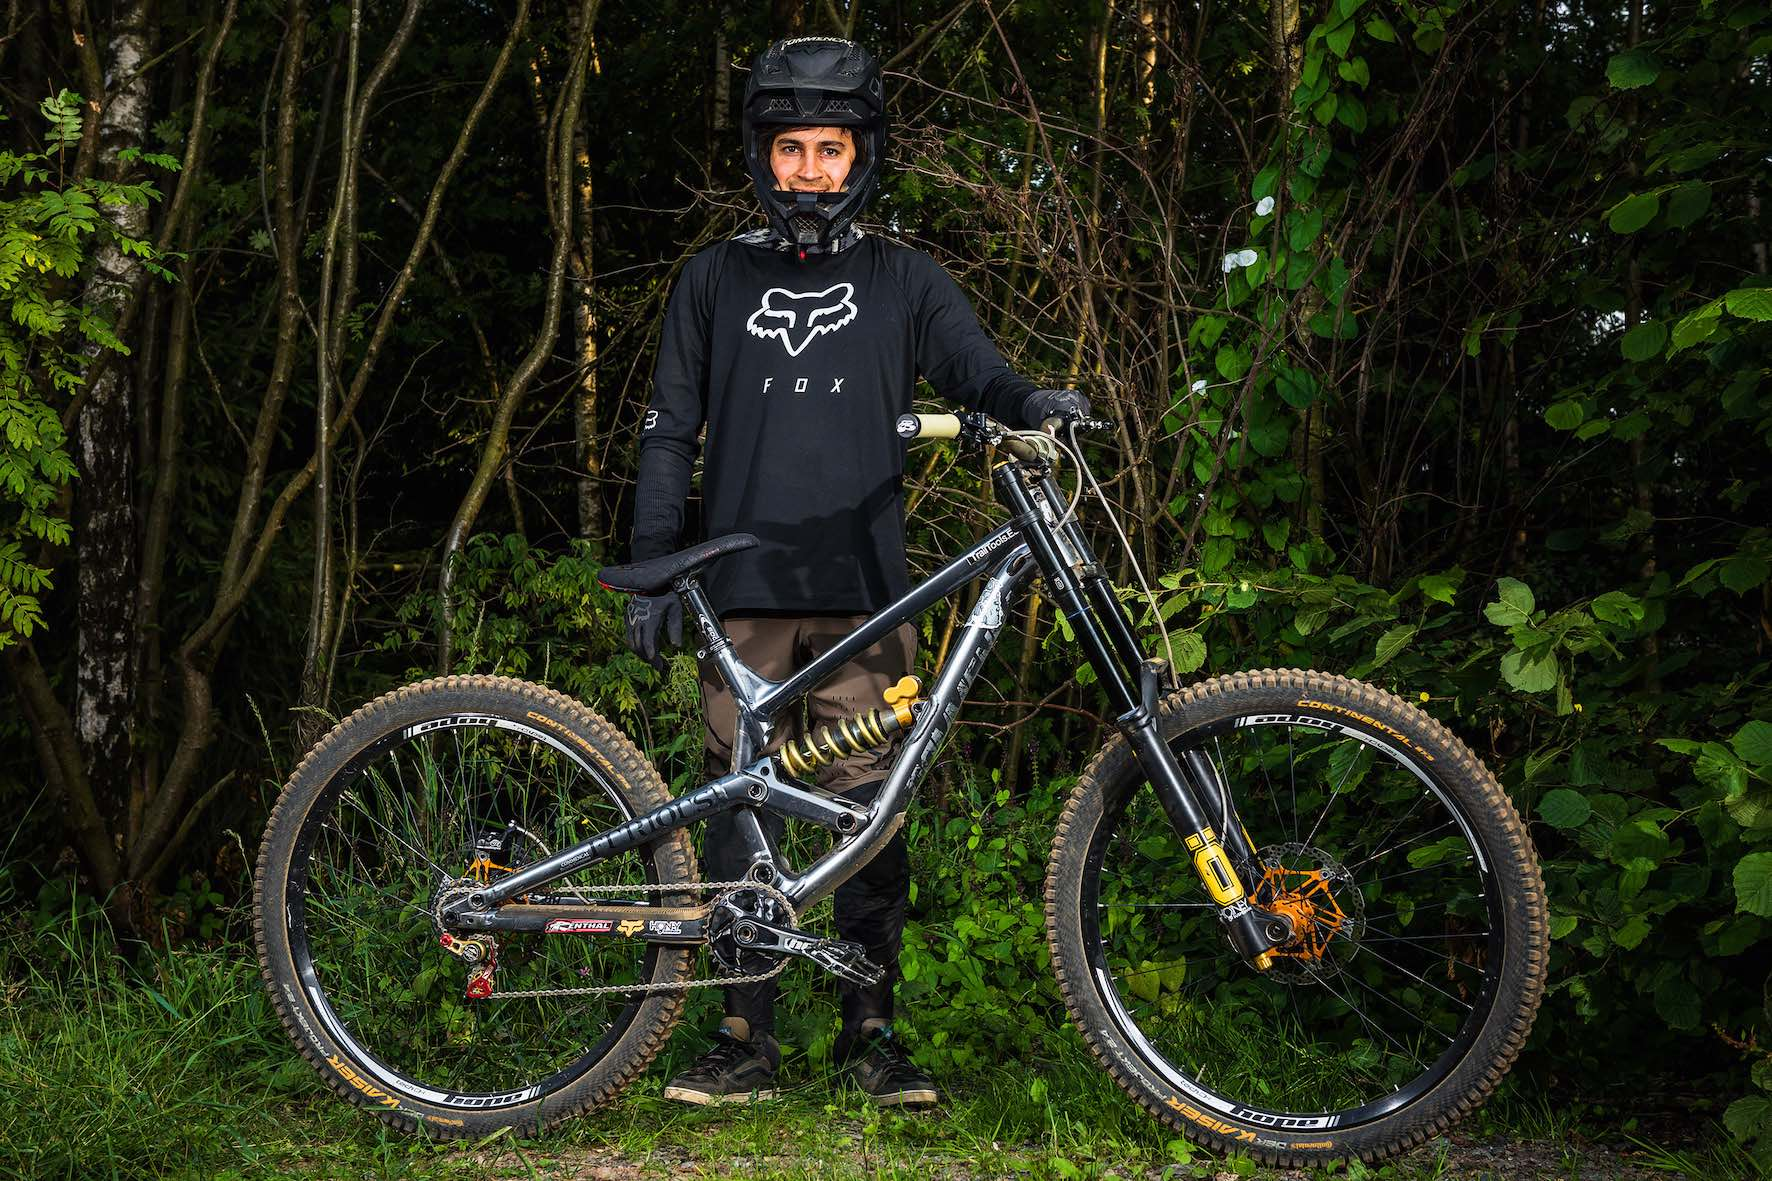 Bikes of Loosefest XL 2019 - Luis Lacondeguy on Commencal